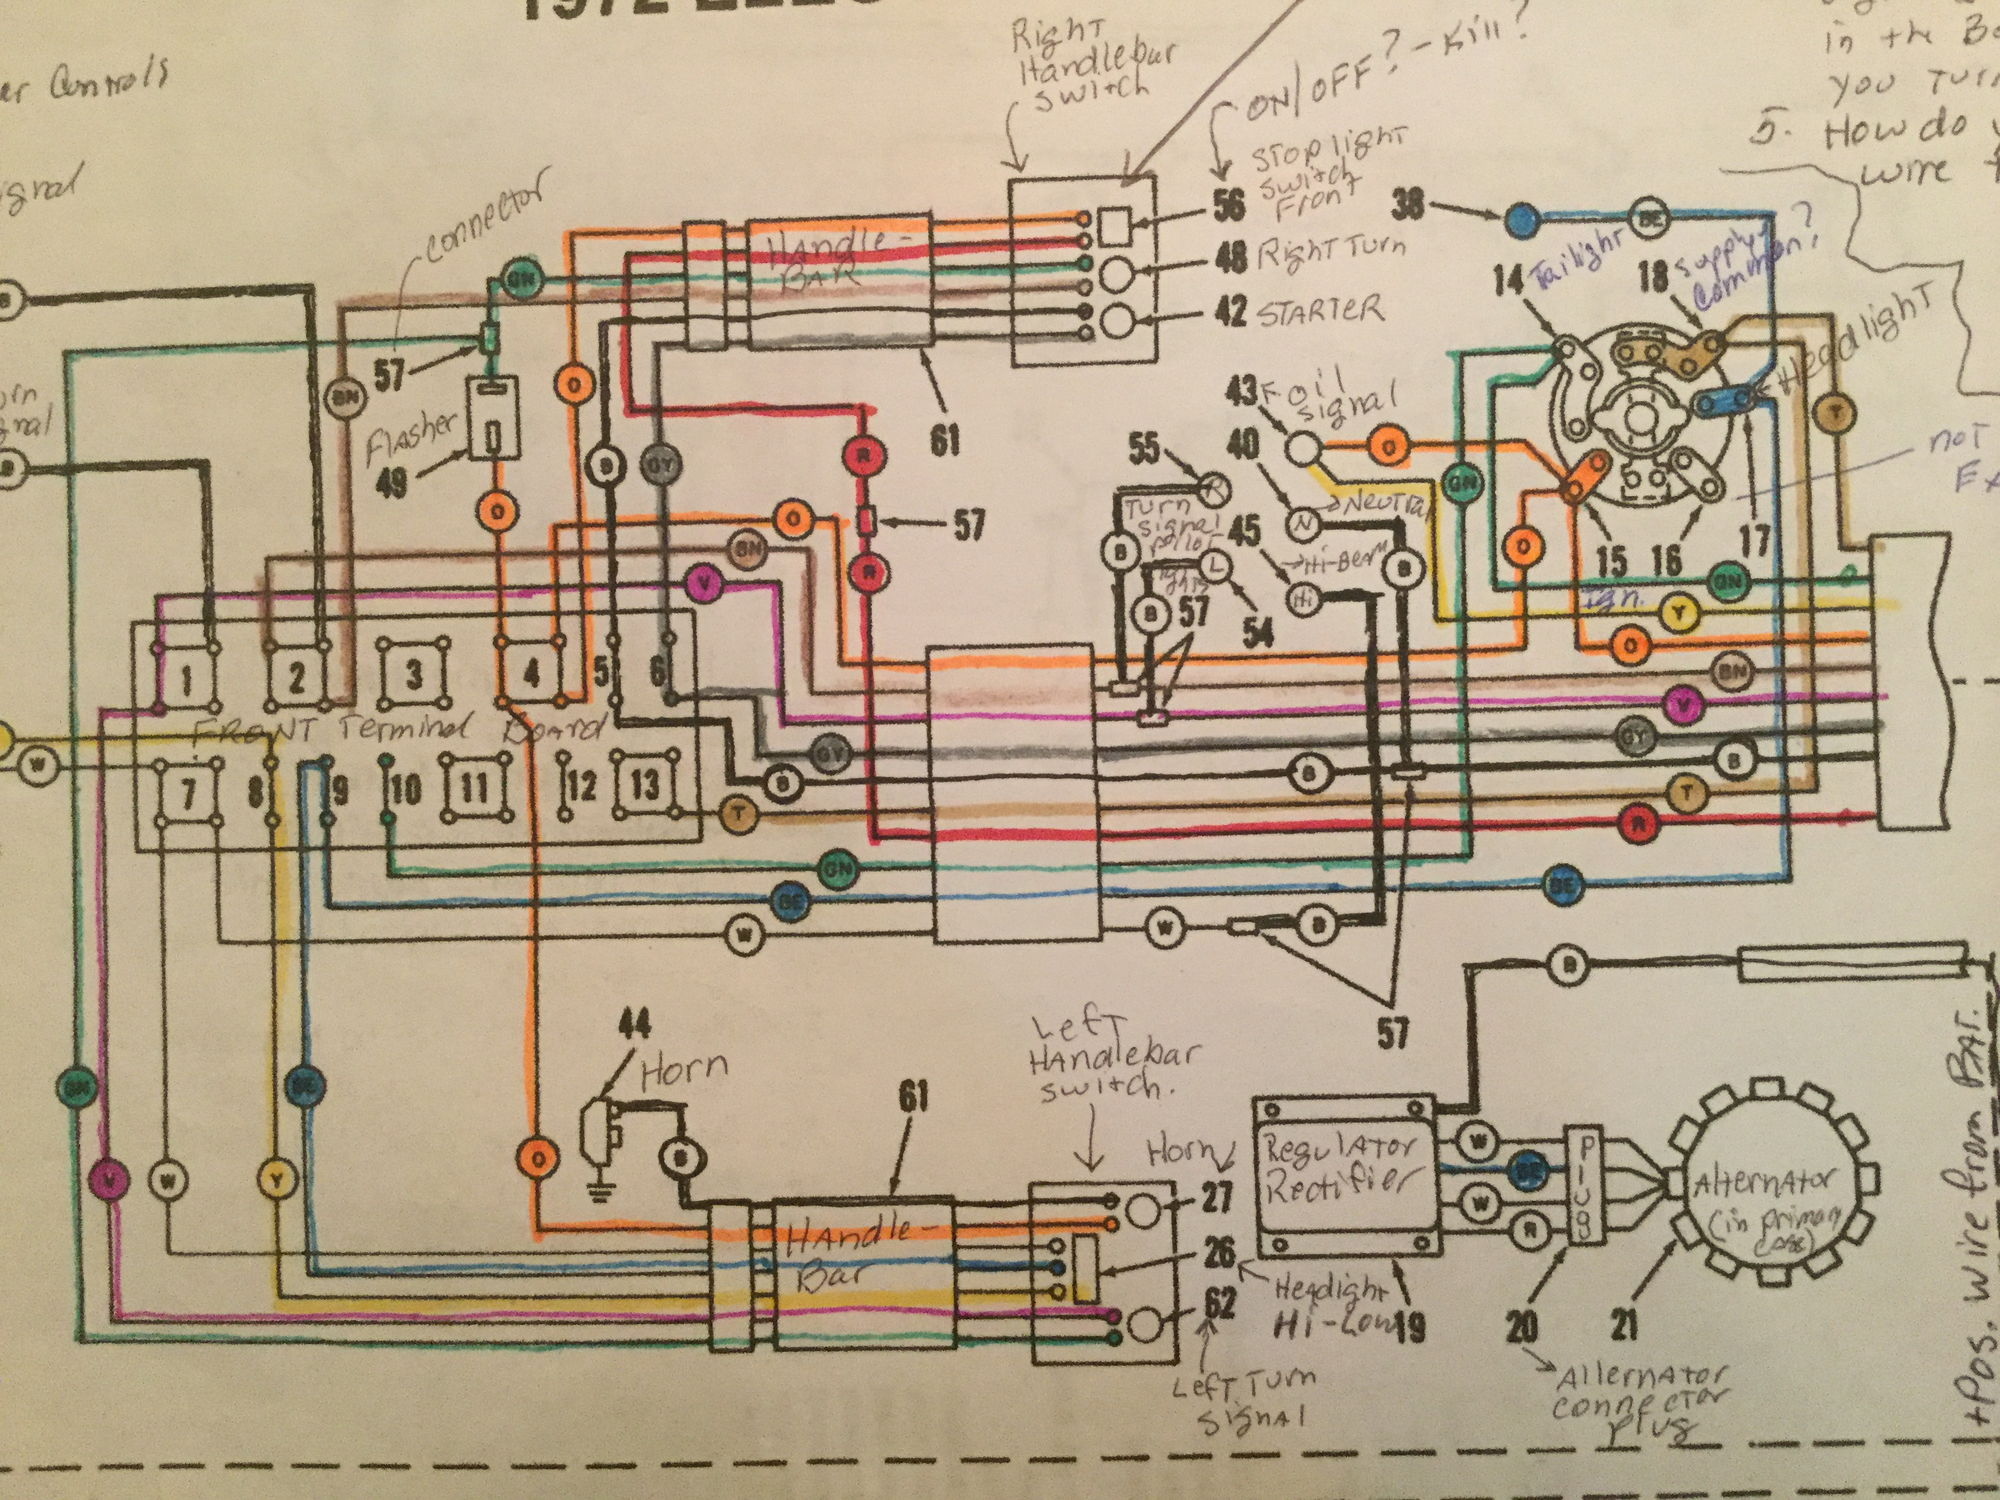 72 flh wiring questions harley davidson forums